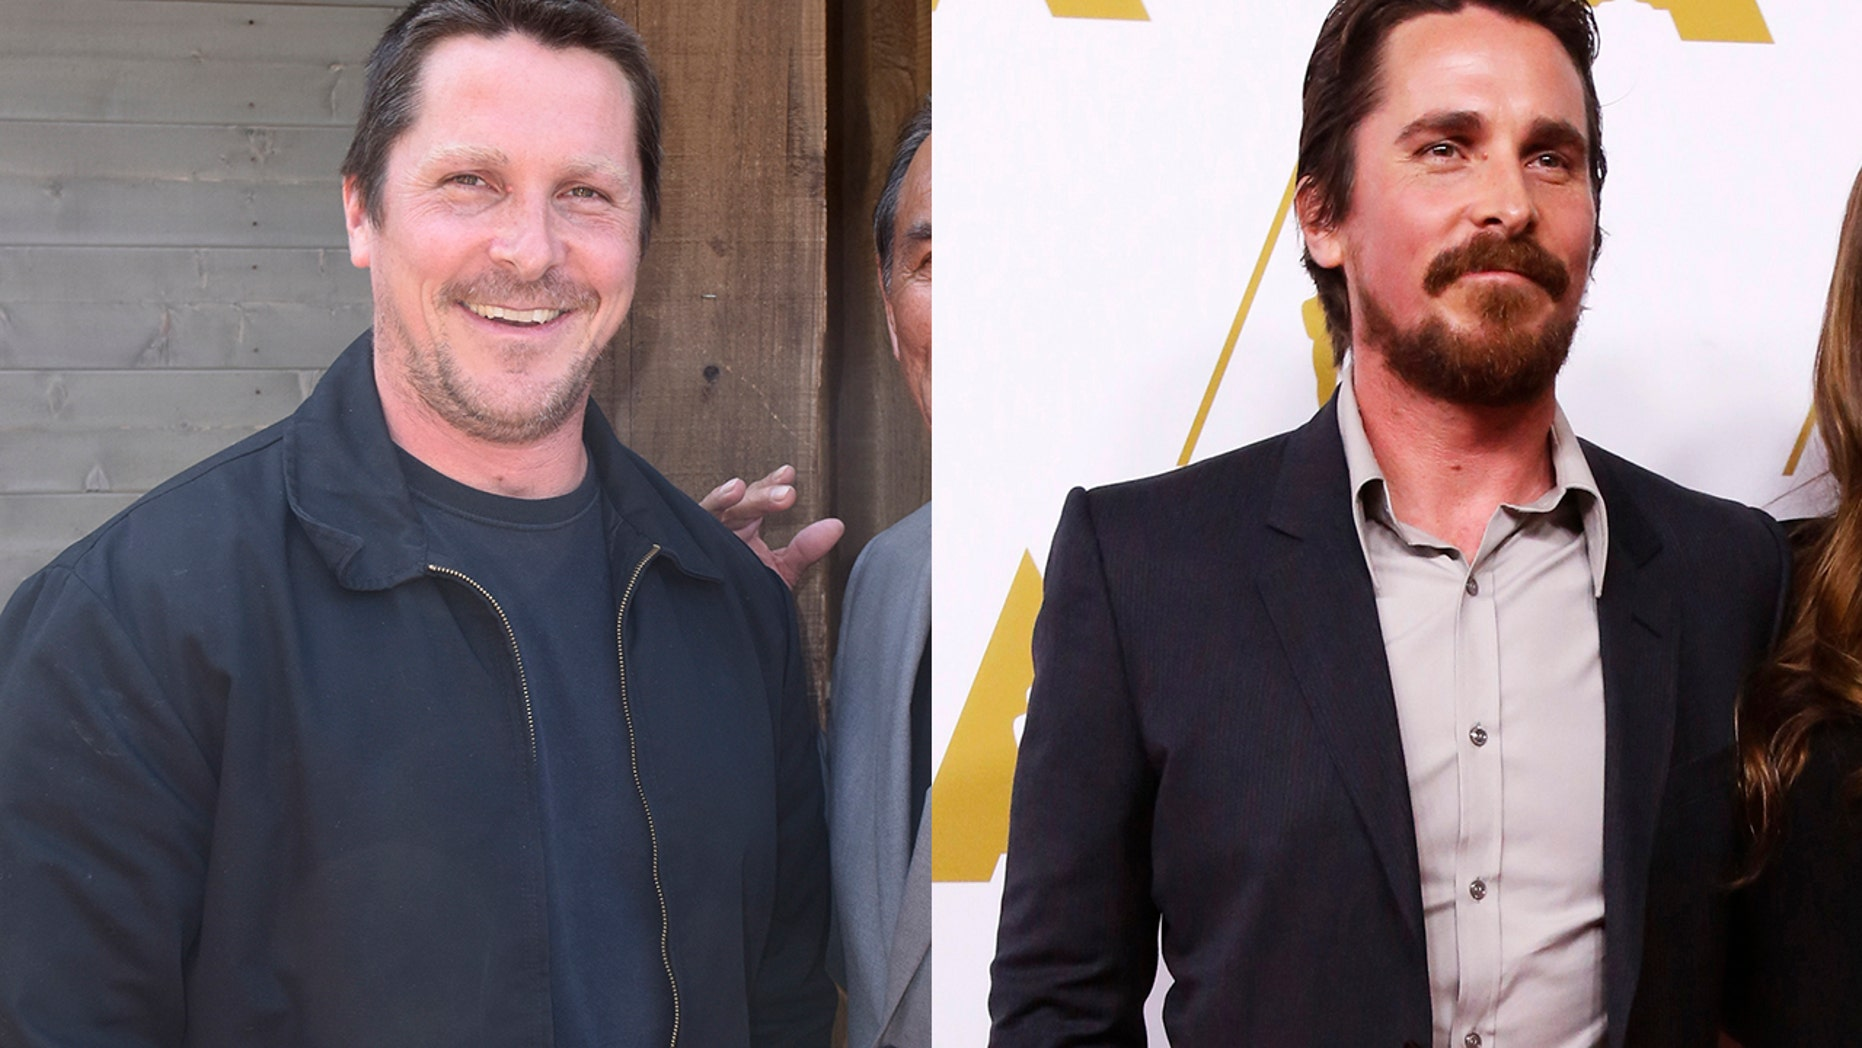 "Christian Bale packed on the pounds to play former Vice President Dick Cheney in the upcoming film ""Backseat."" The actor looks very different (left) than his typically fit physique (right). <a href=""http://www.etonline.com/slideshow/gallery/126866_Actors_Body_Transformations_For_Roles/50024"" target=""_blank"">Click here for more celebrity transformation pics.</a>"